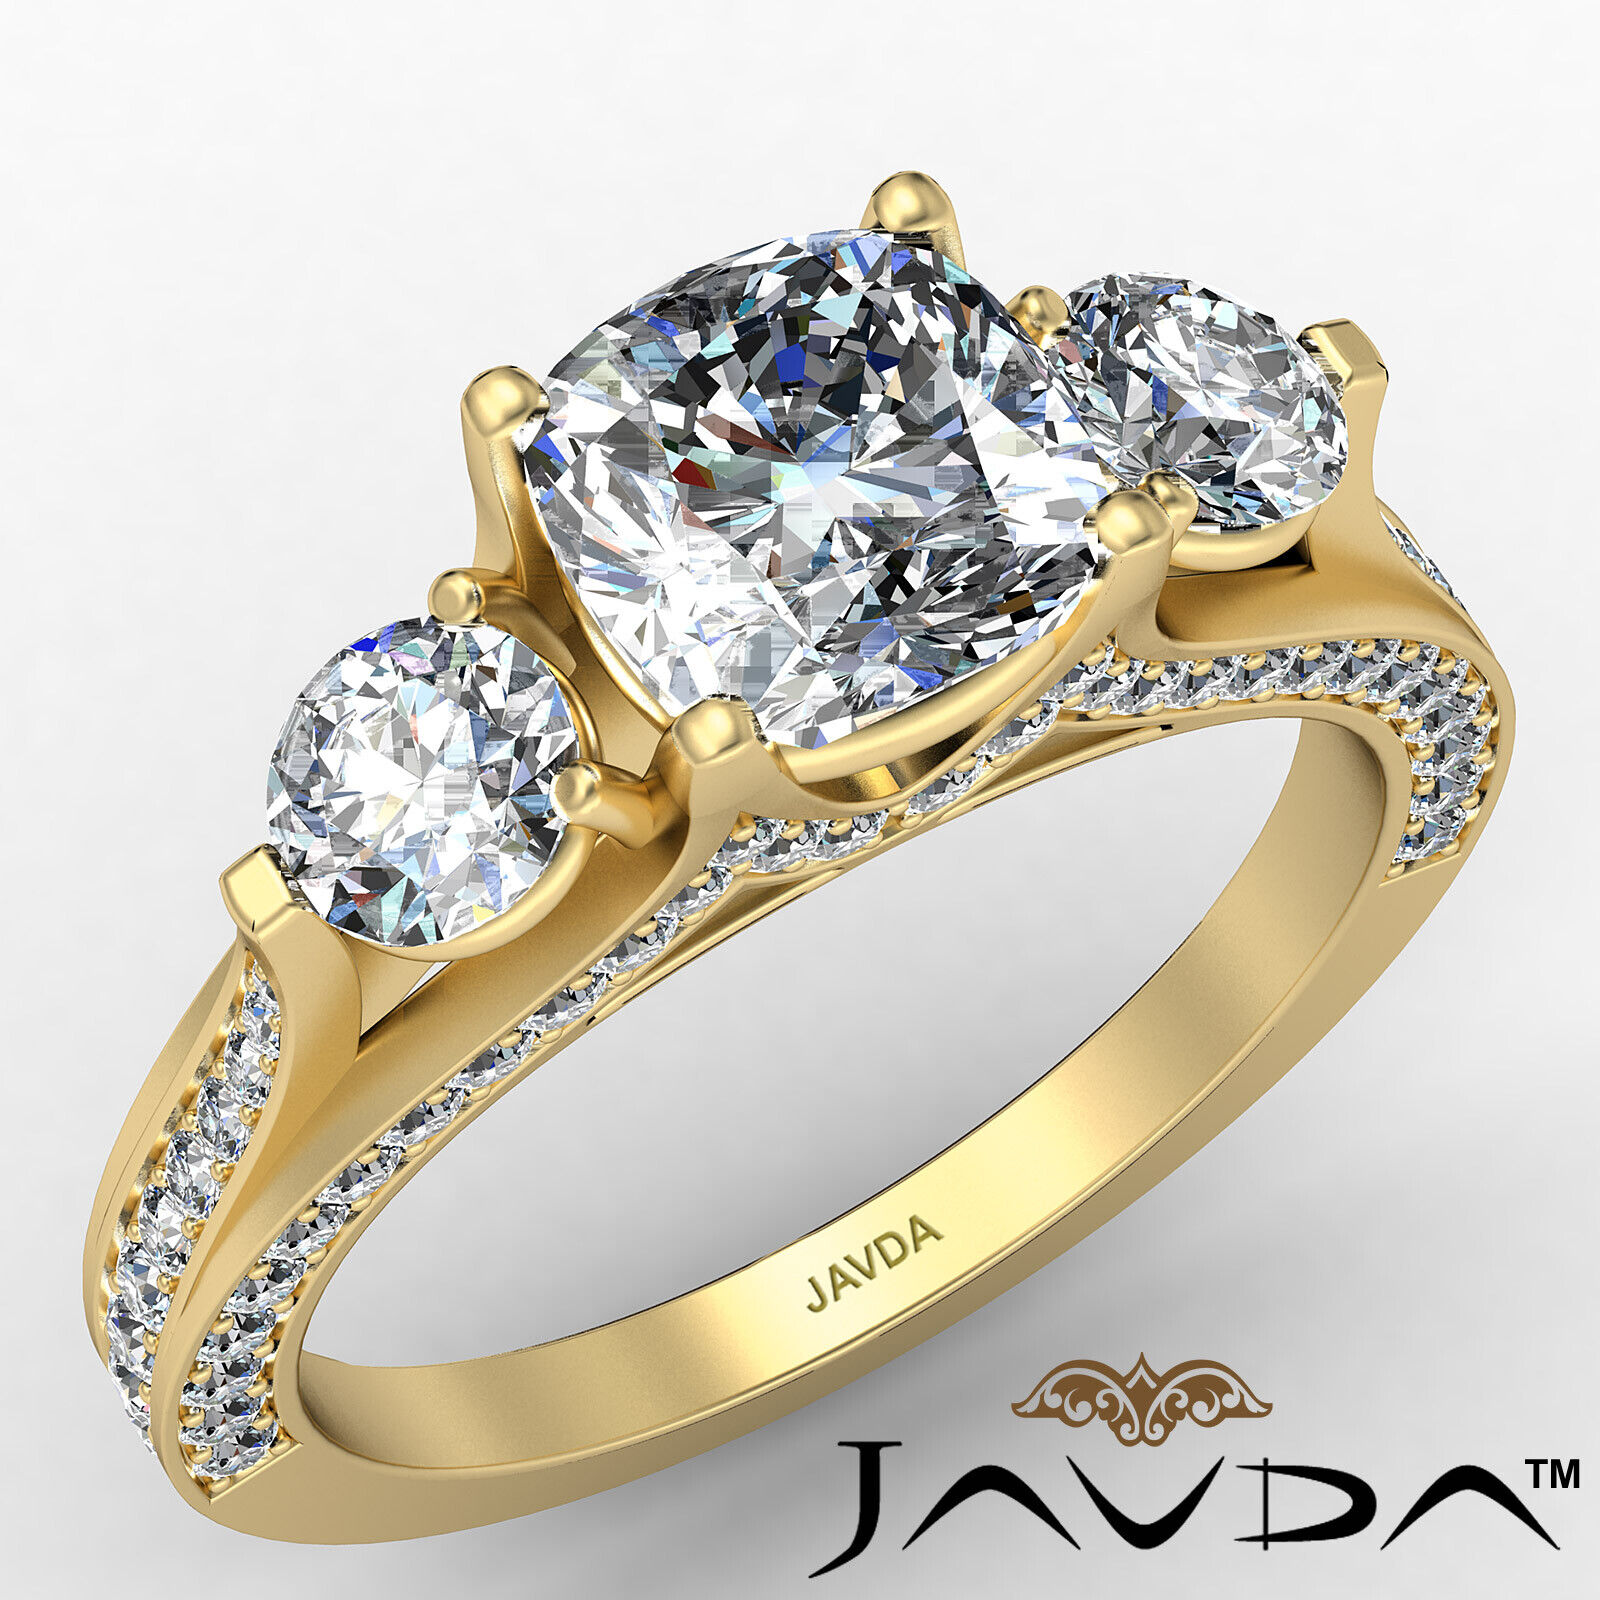 Cushion Diamond Engagement Ring Certified by GIA E Color & VVS1 clarity 2.1 ctw 1